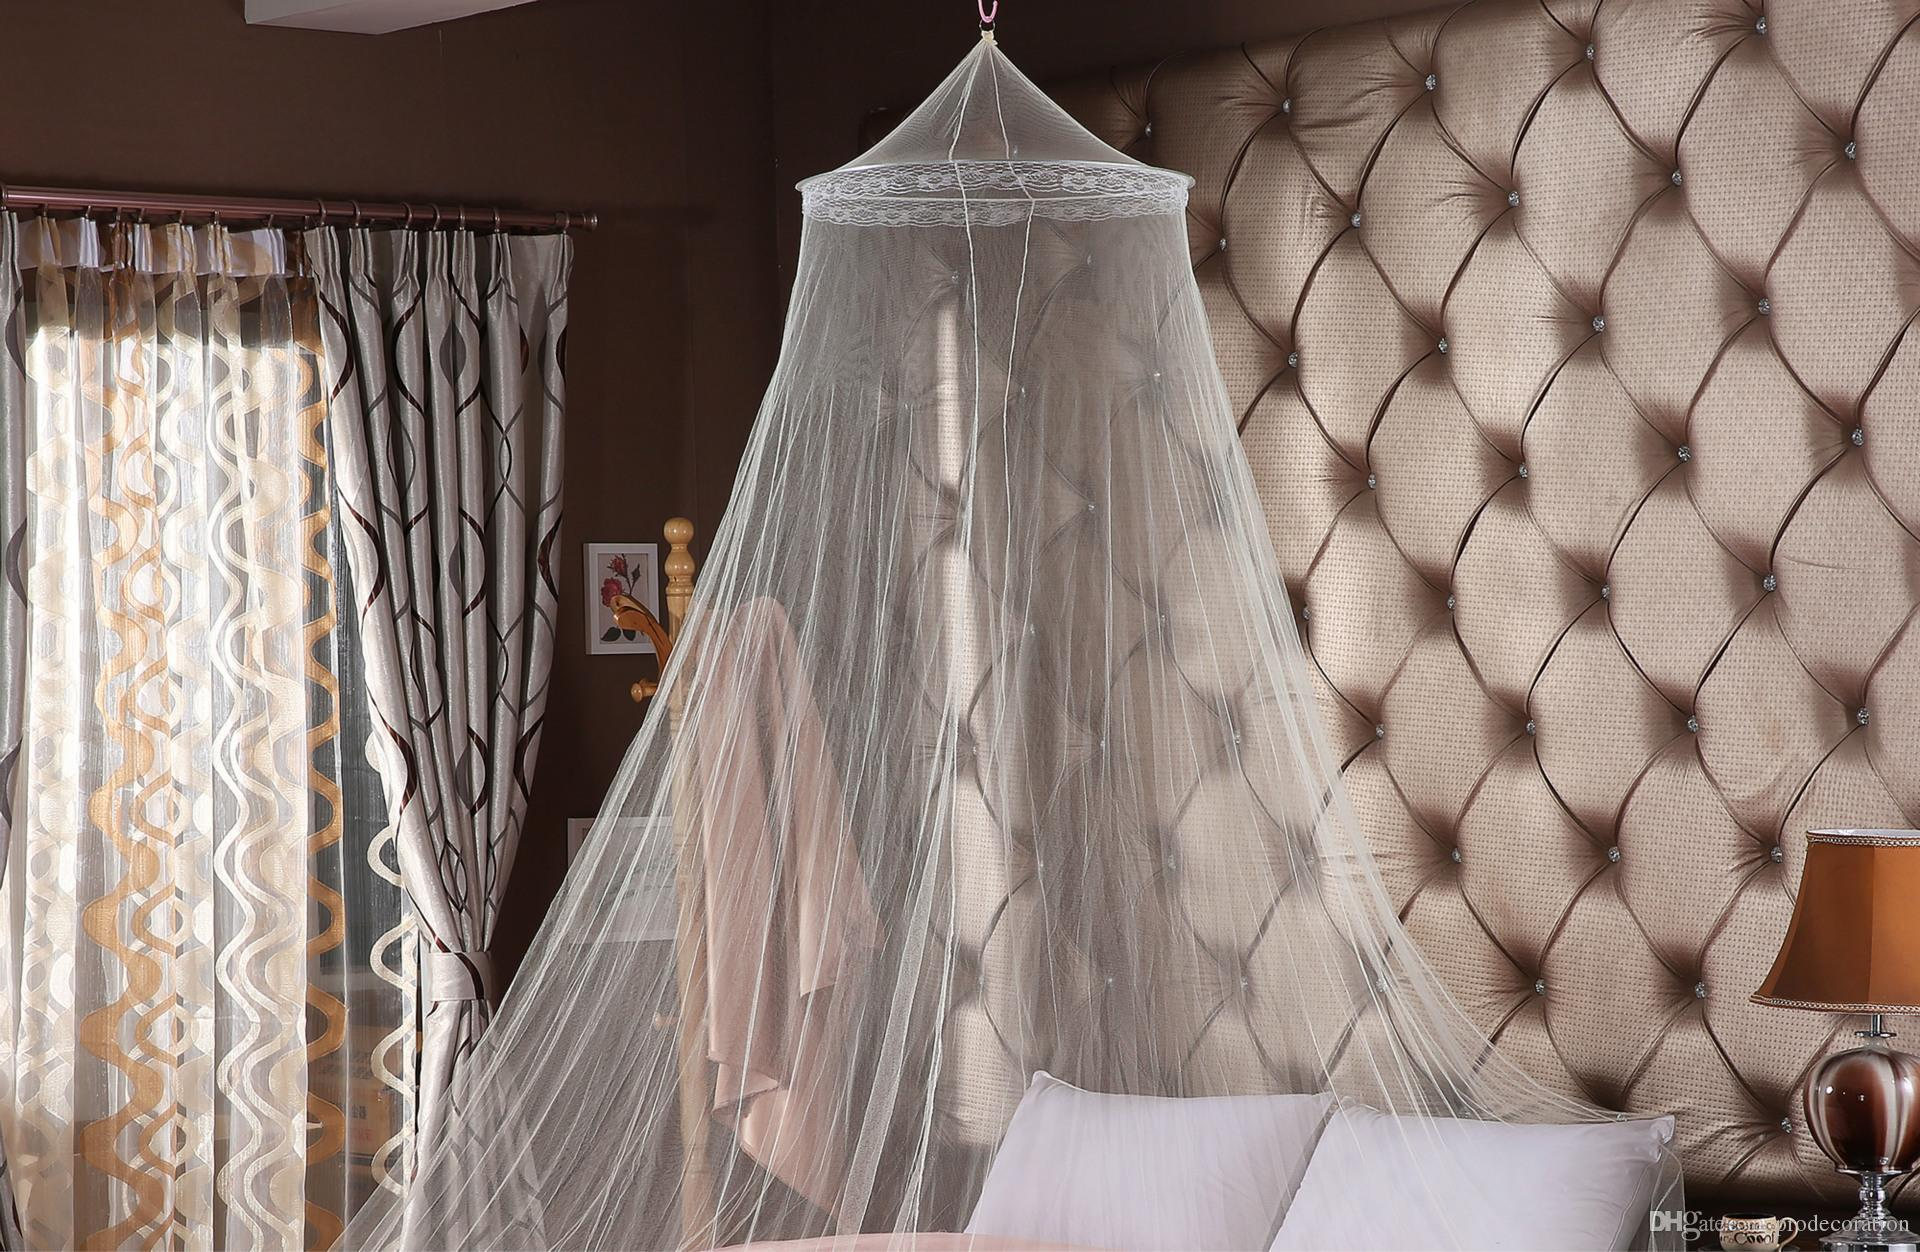 Elegant Mosquito Net For Double Bed Canopy Insect Reject Net Circular on designer modern curtain design, white house windows design, white house paint design,